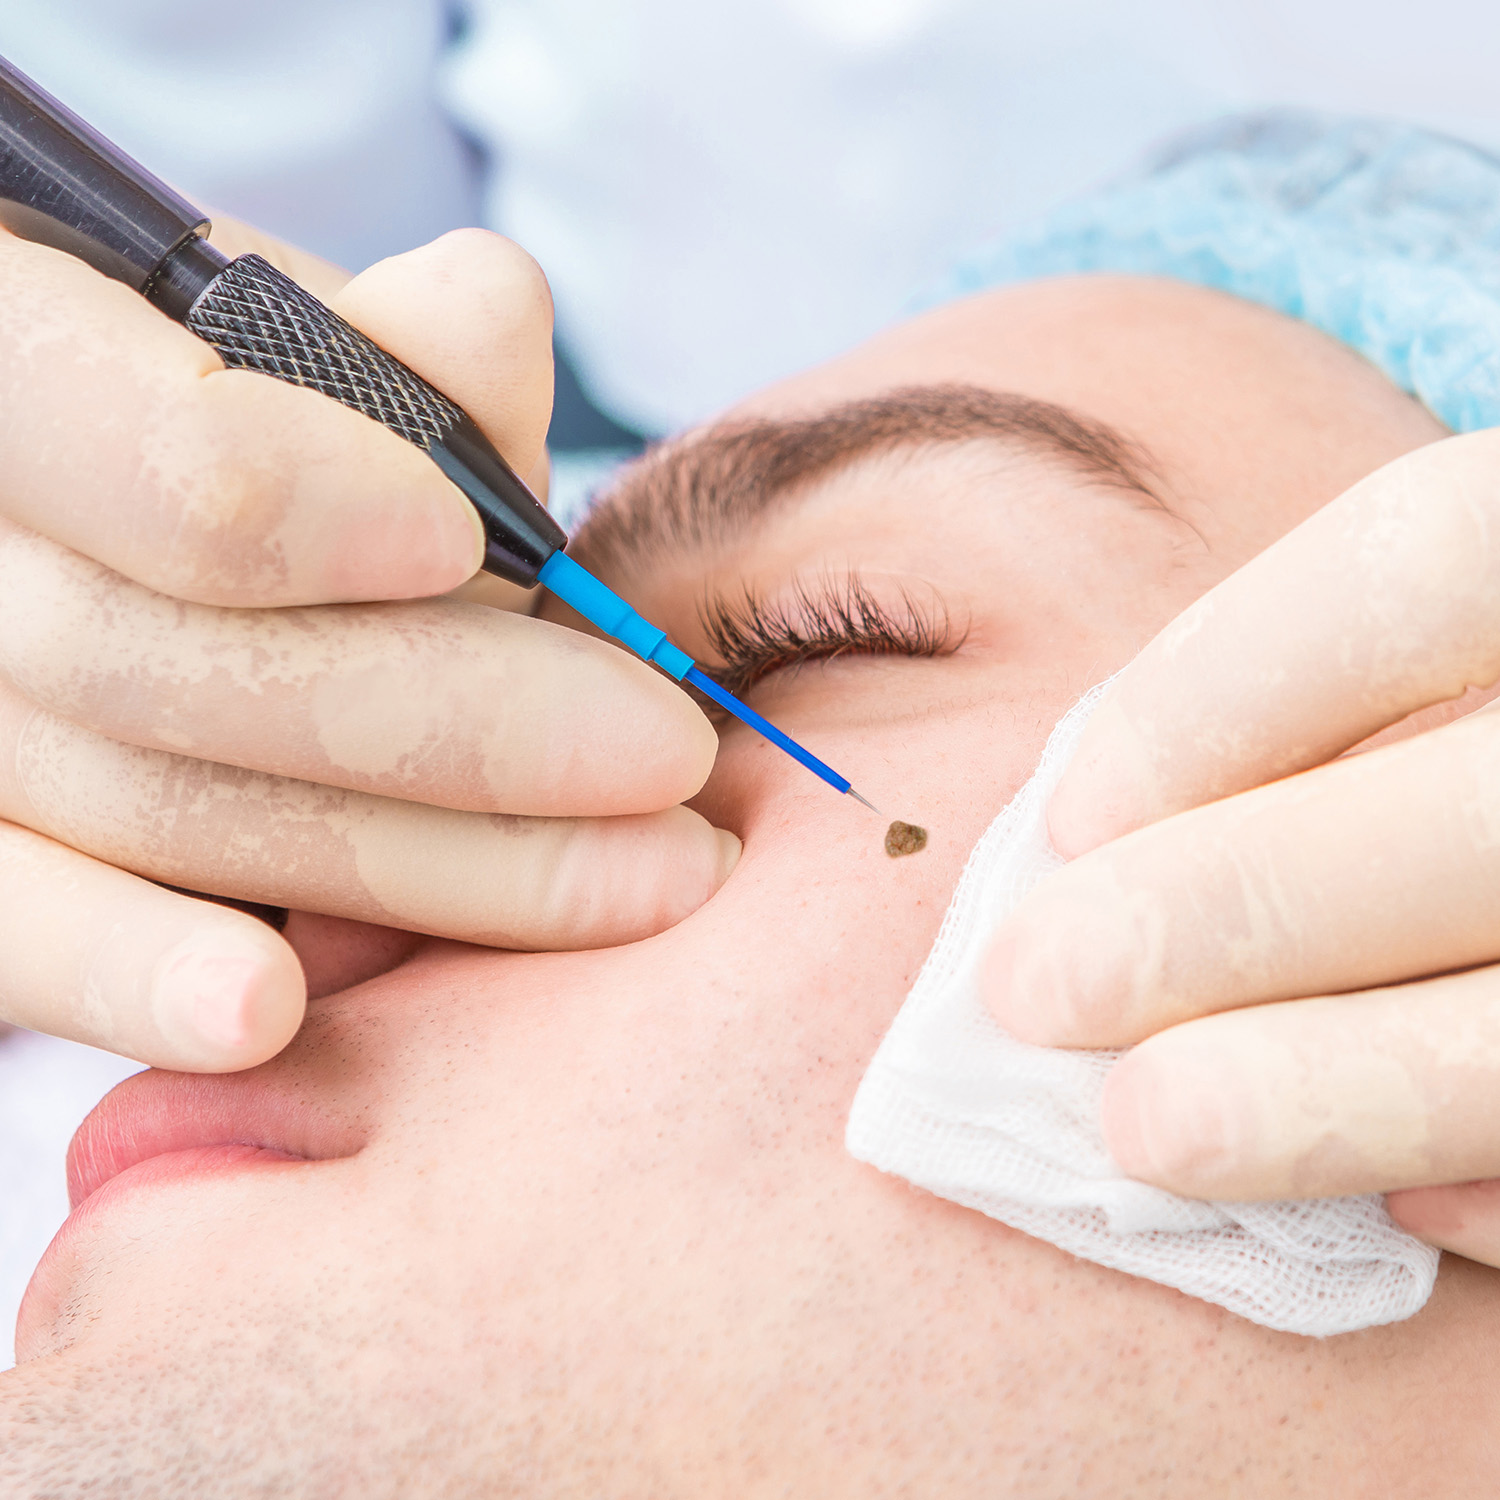 Radiofrequency mole removal aftercare